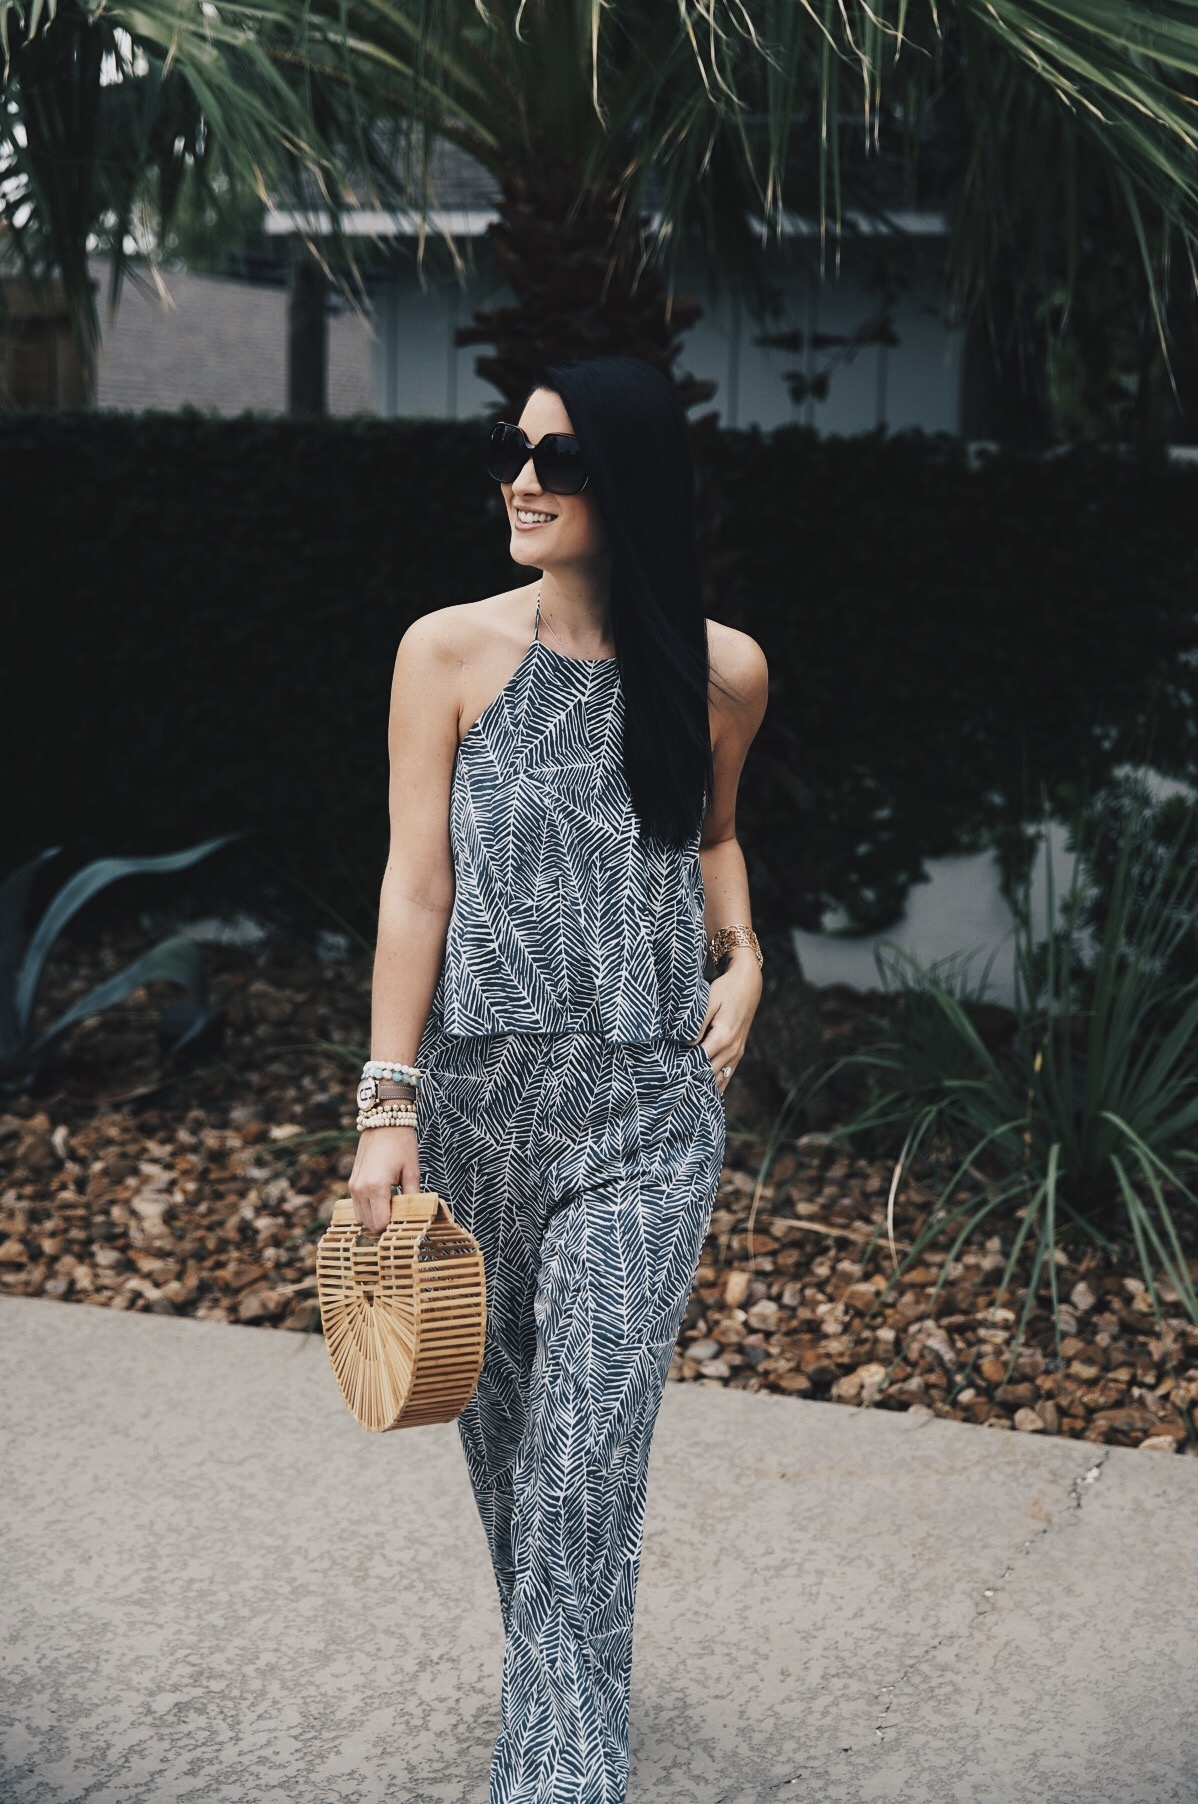 DTKAustin shares details on one of her go-to women's boutiques; Red Dress Boutique along with this beautiful palm print jumpsuit and Japanese bamboo bag. | how to style a jumpsuit | how to wear a jumpsuit | fall fashion tips | fall outfit ideas | fall style tips | what to wear for fall | cool weather fashion | fashion for fall | style tips for fall | outfit ideas for fall || Dressed to Kill